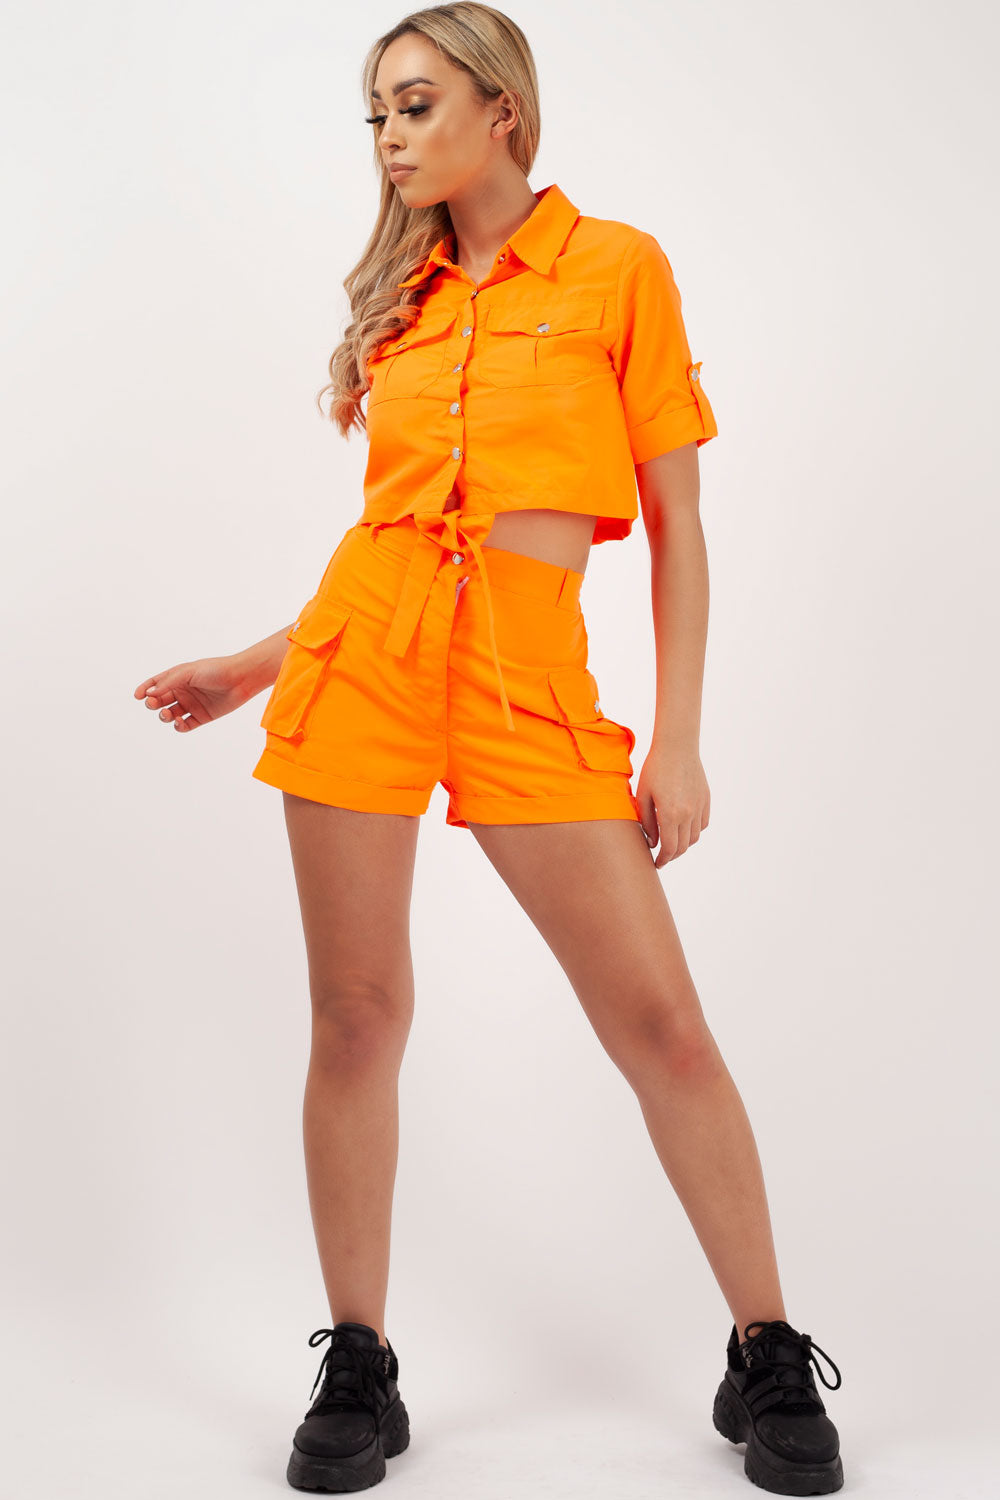 neon orange co ord outfits